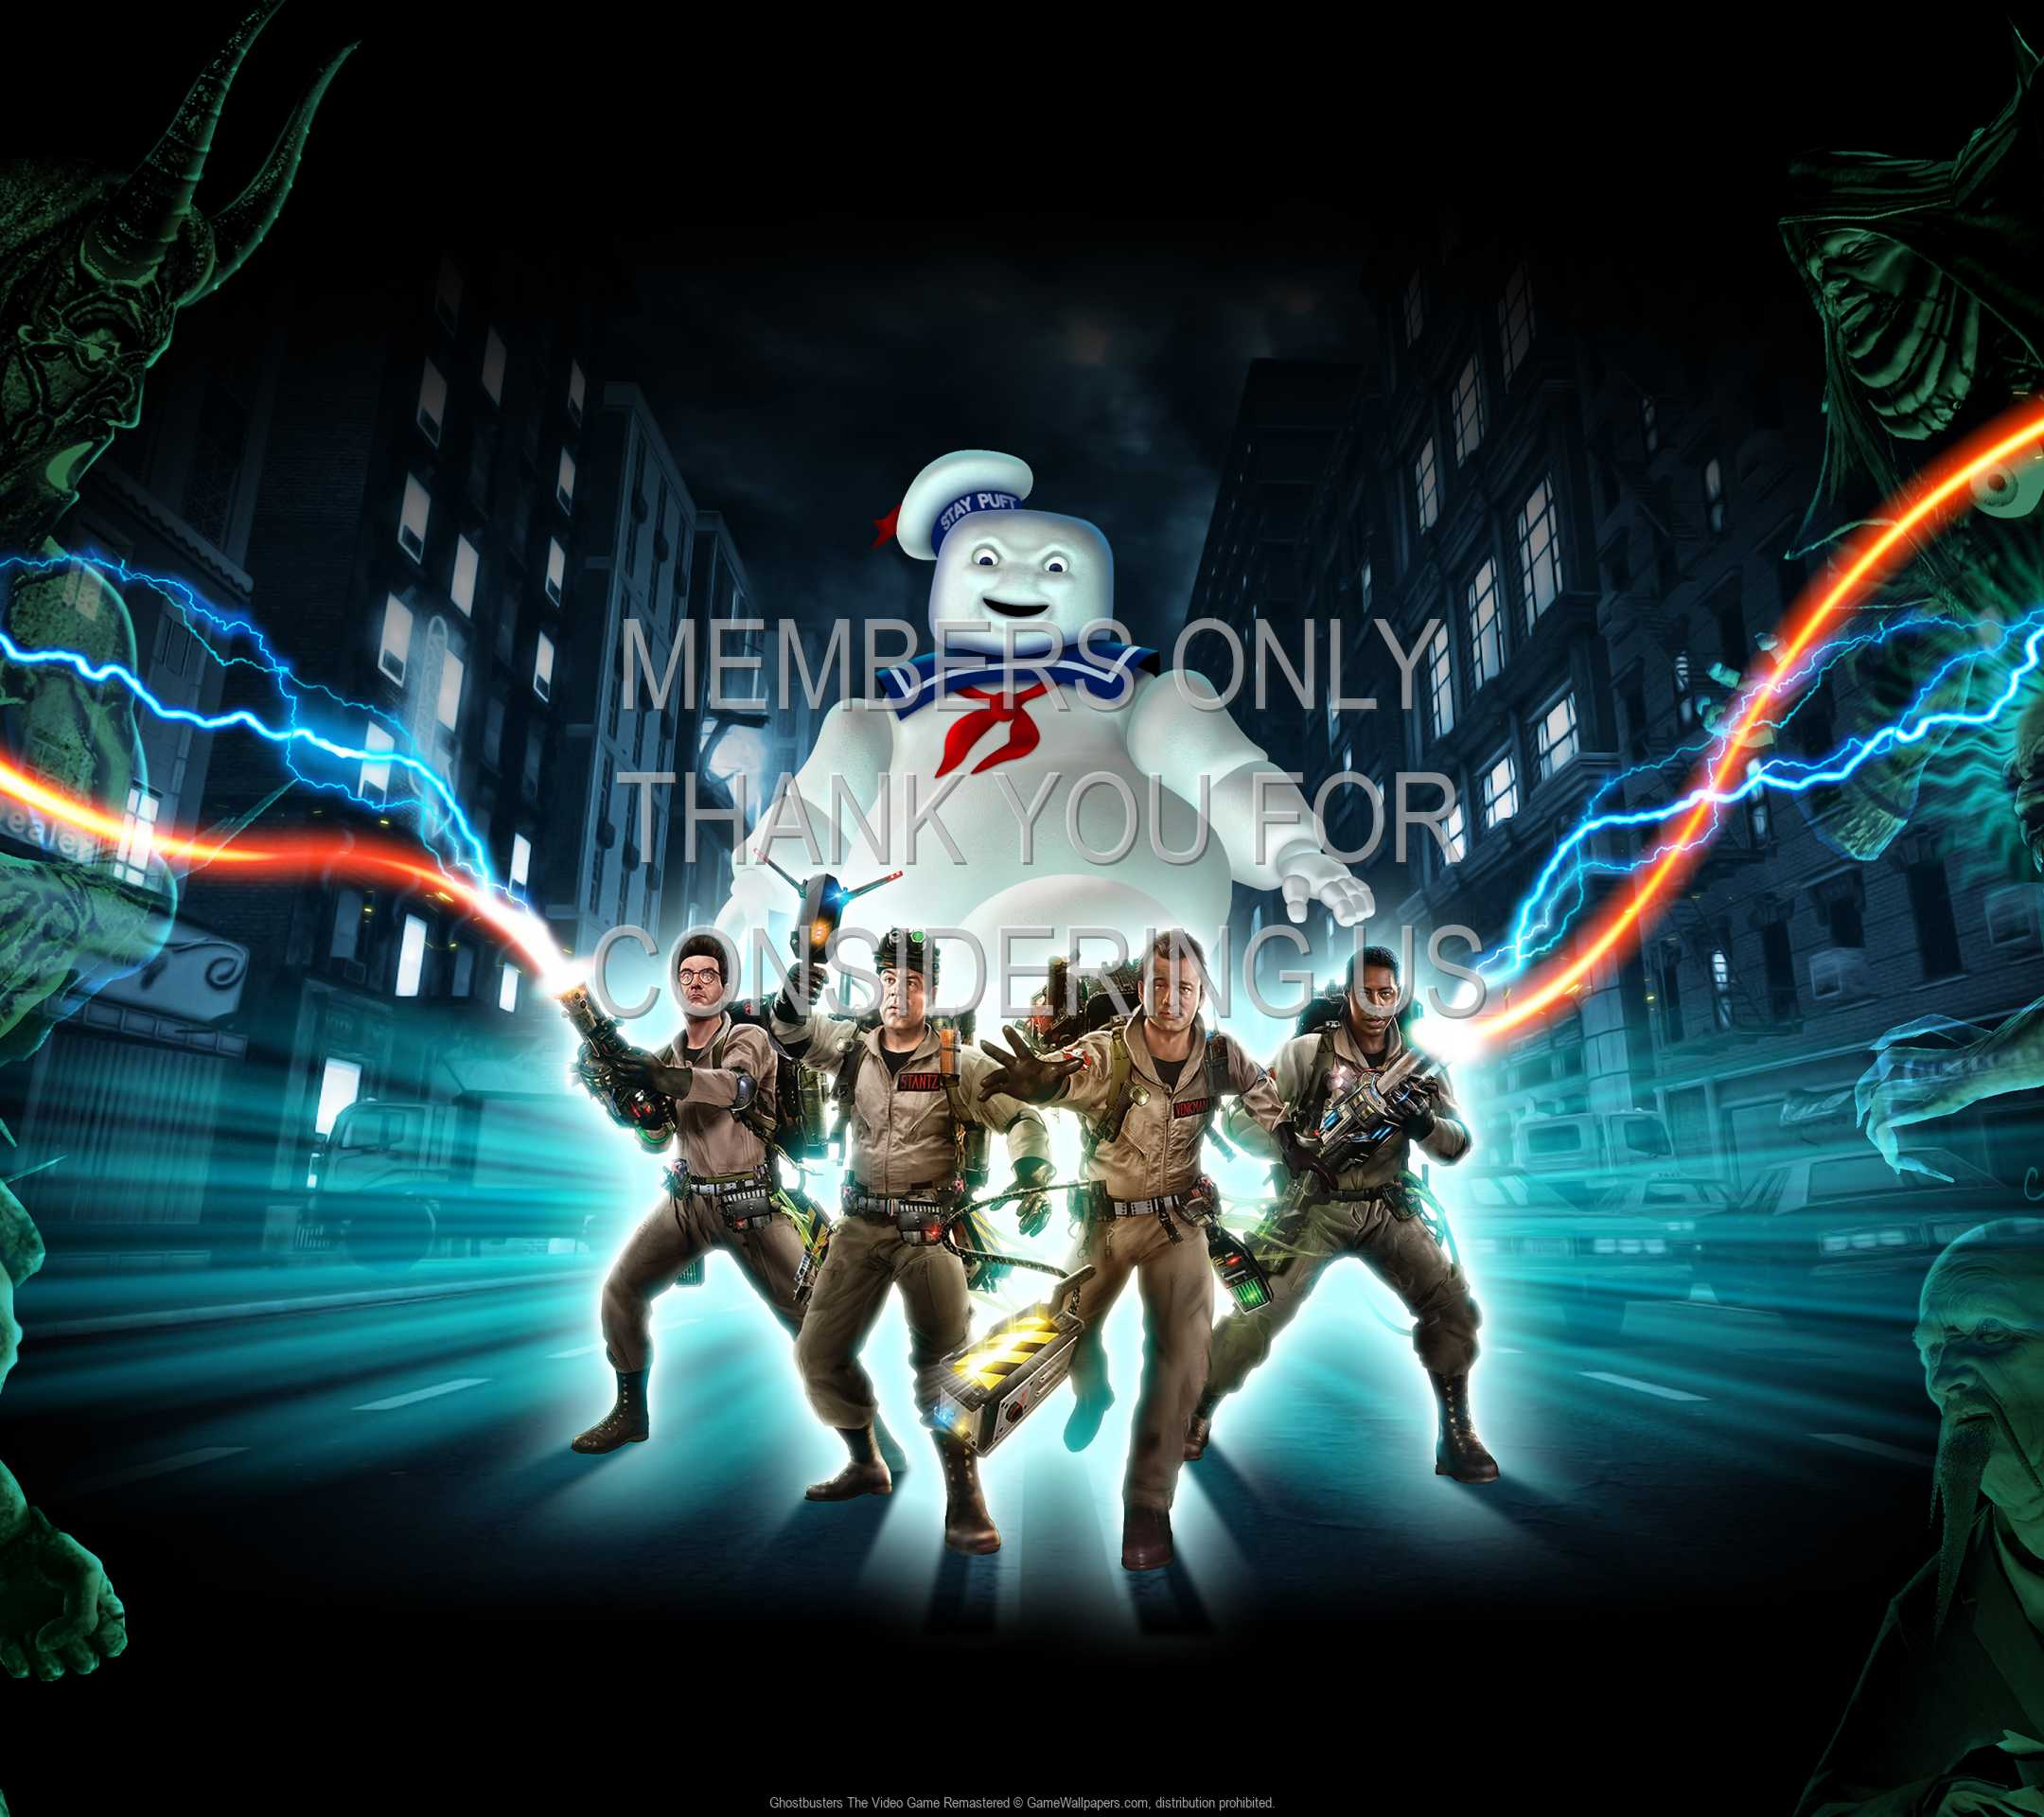 Ghostbusters: The Video Game Remastered 1080p Horizontal Móvil fondo de escritorio 01